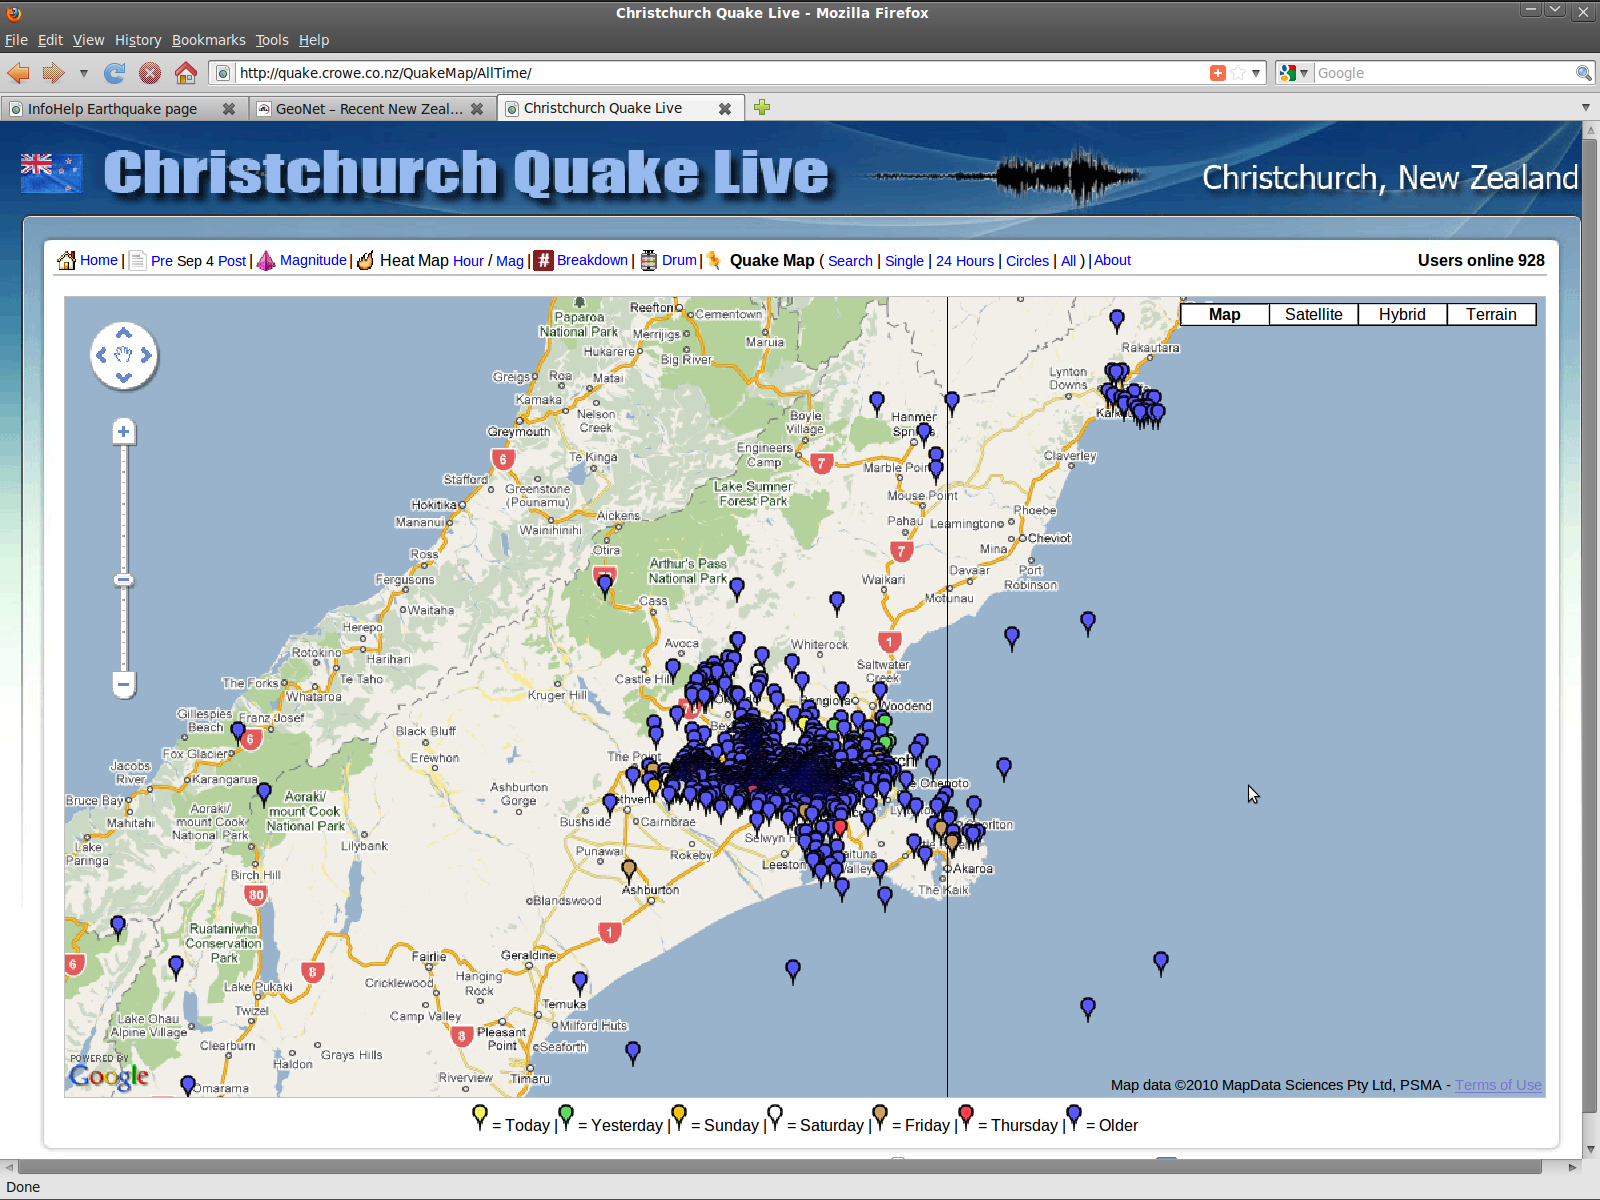 infohelp earthquake  stay or utilize moving companies  page - crowe quakemap alltime